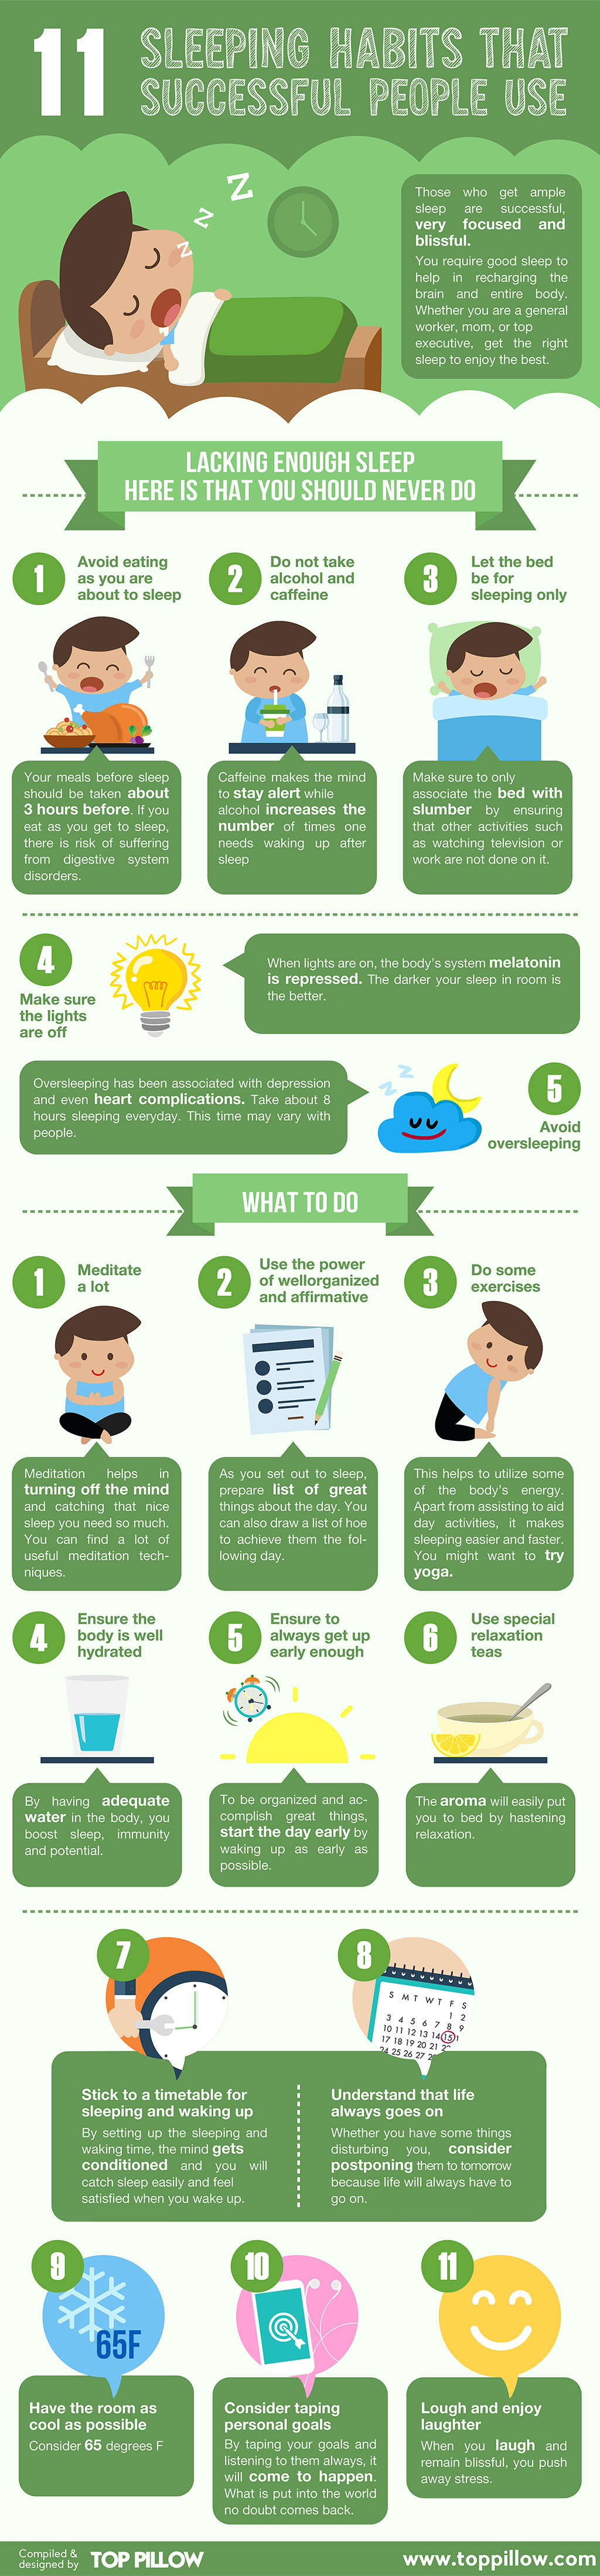 11 Sleeping Habits Of Successful People Infographic